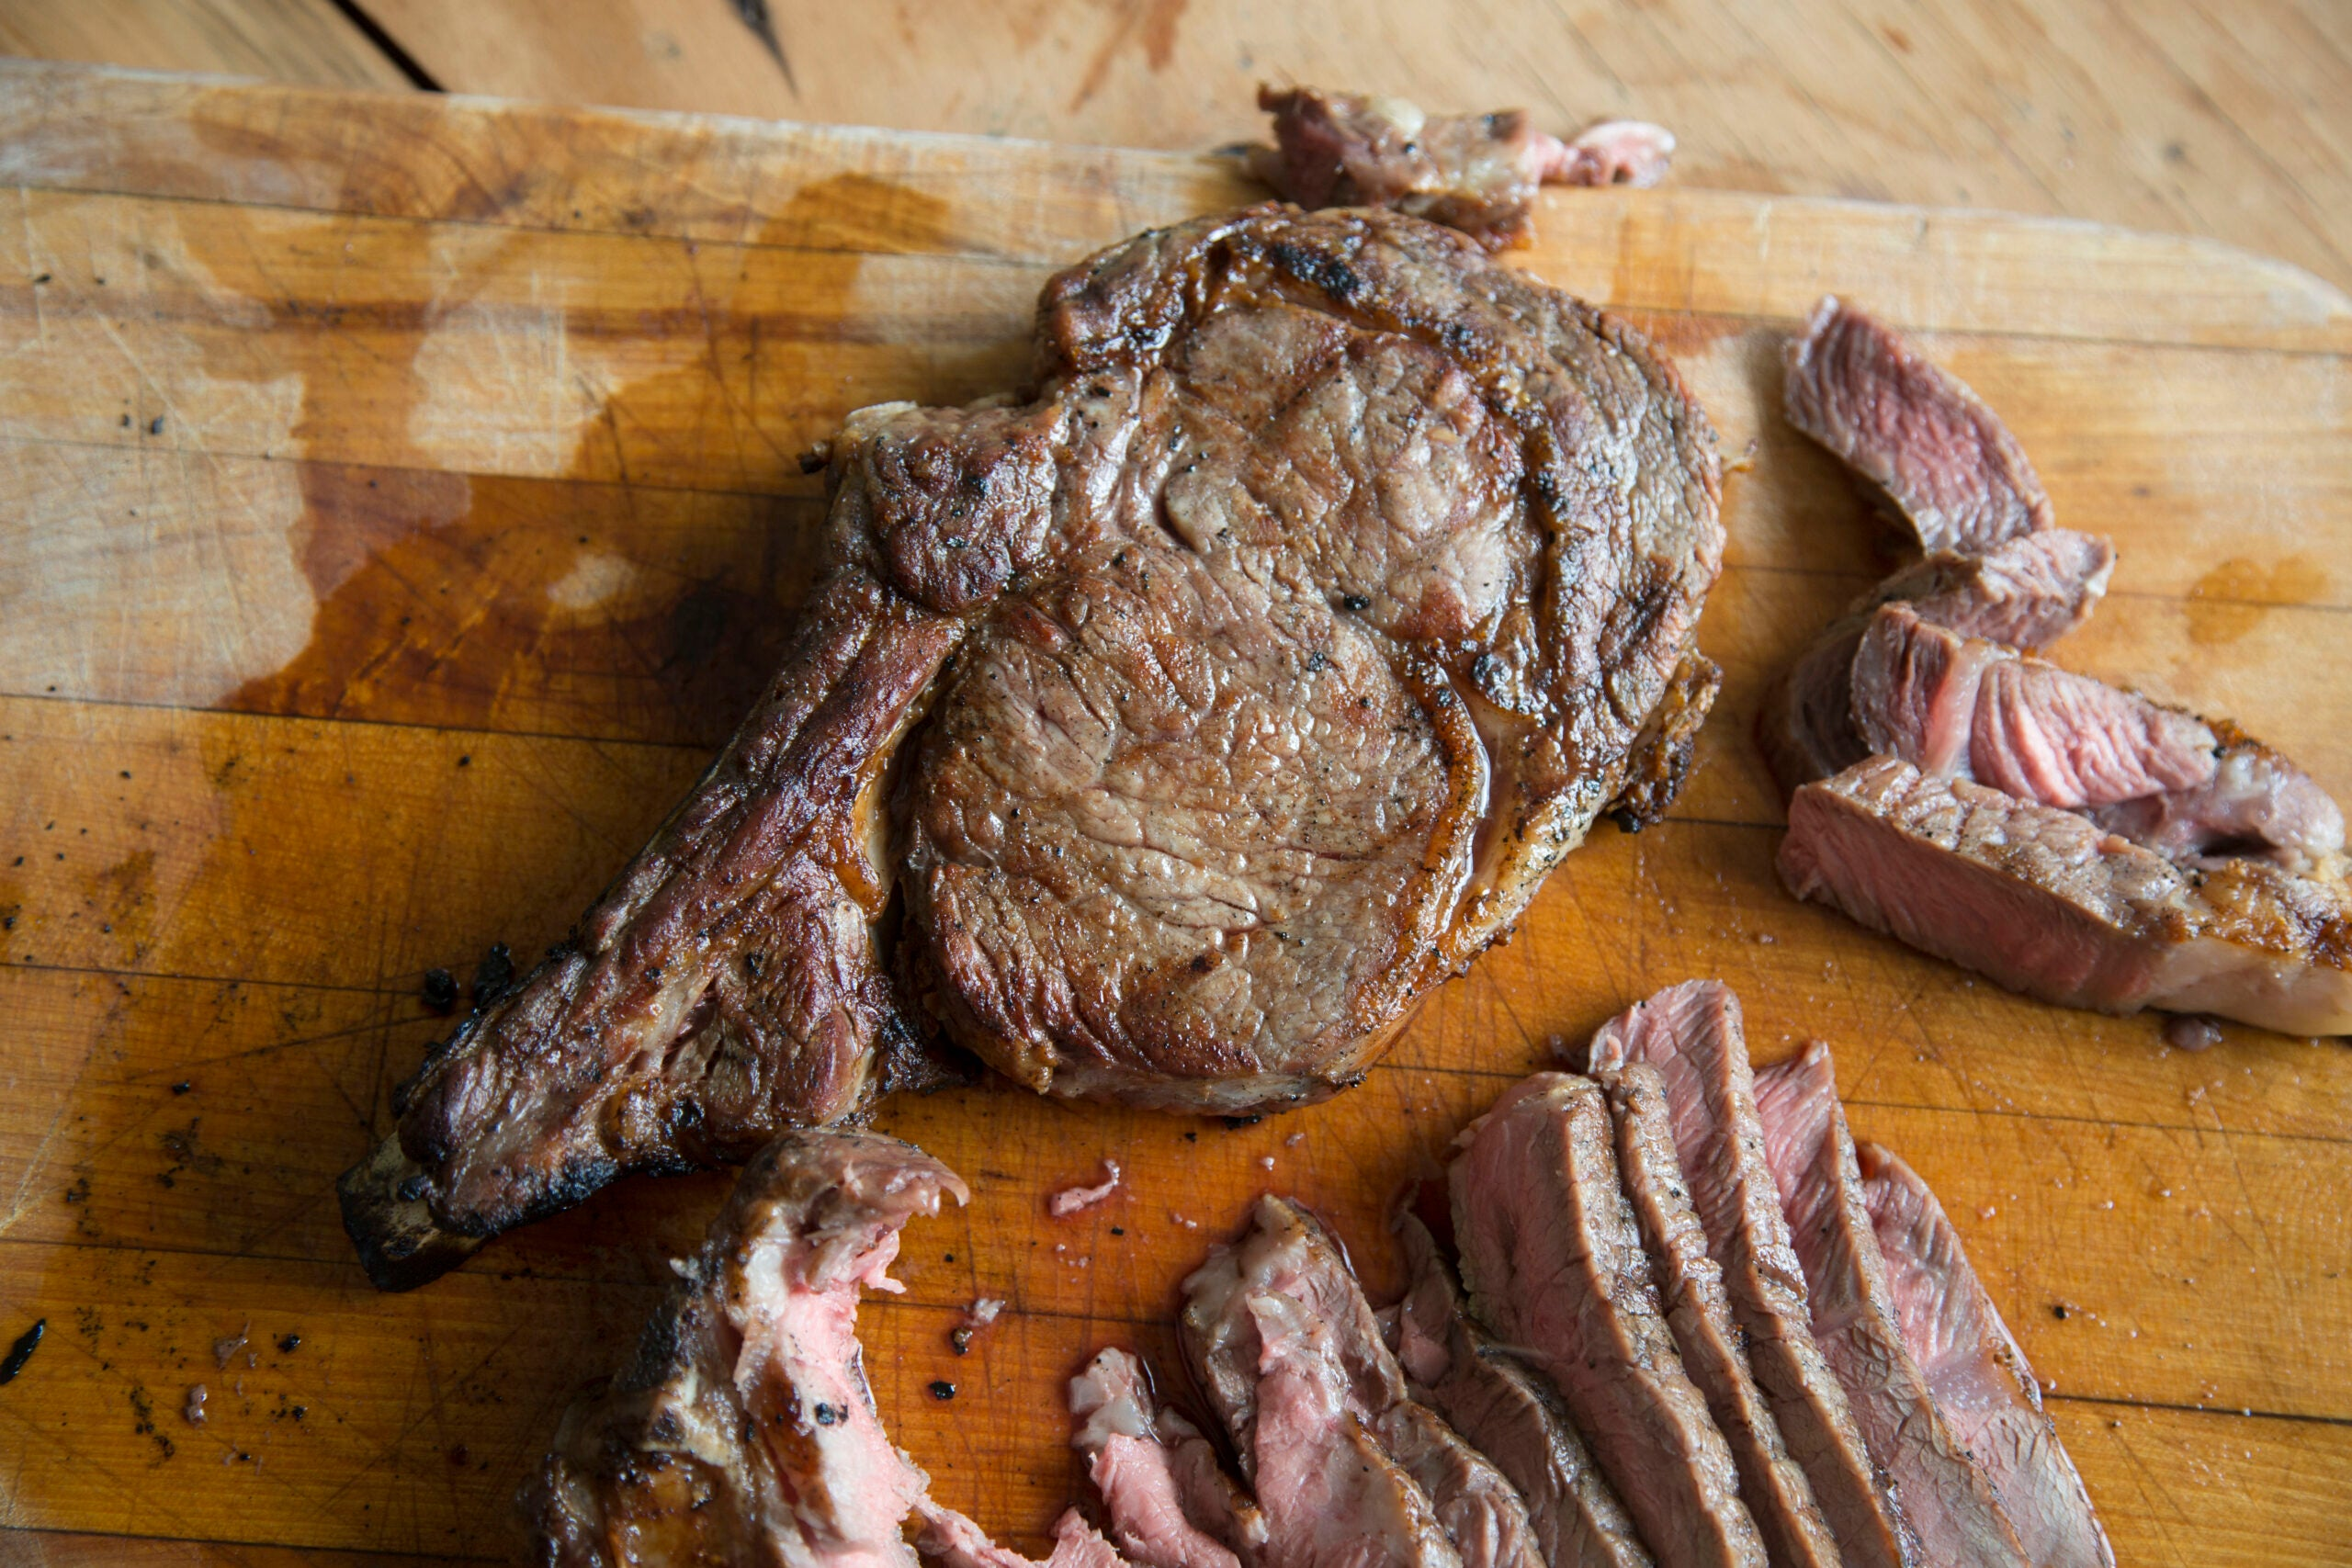 The Science Of Grilling: How Heat Transforms Steak